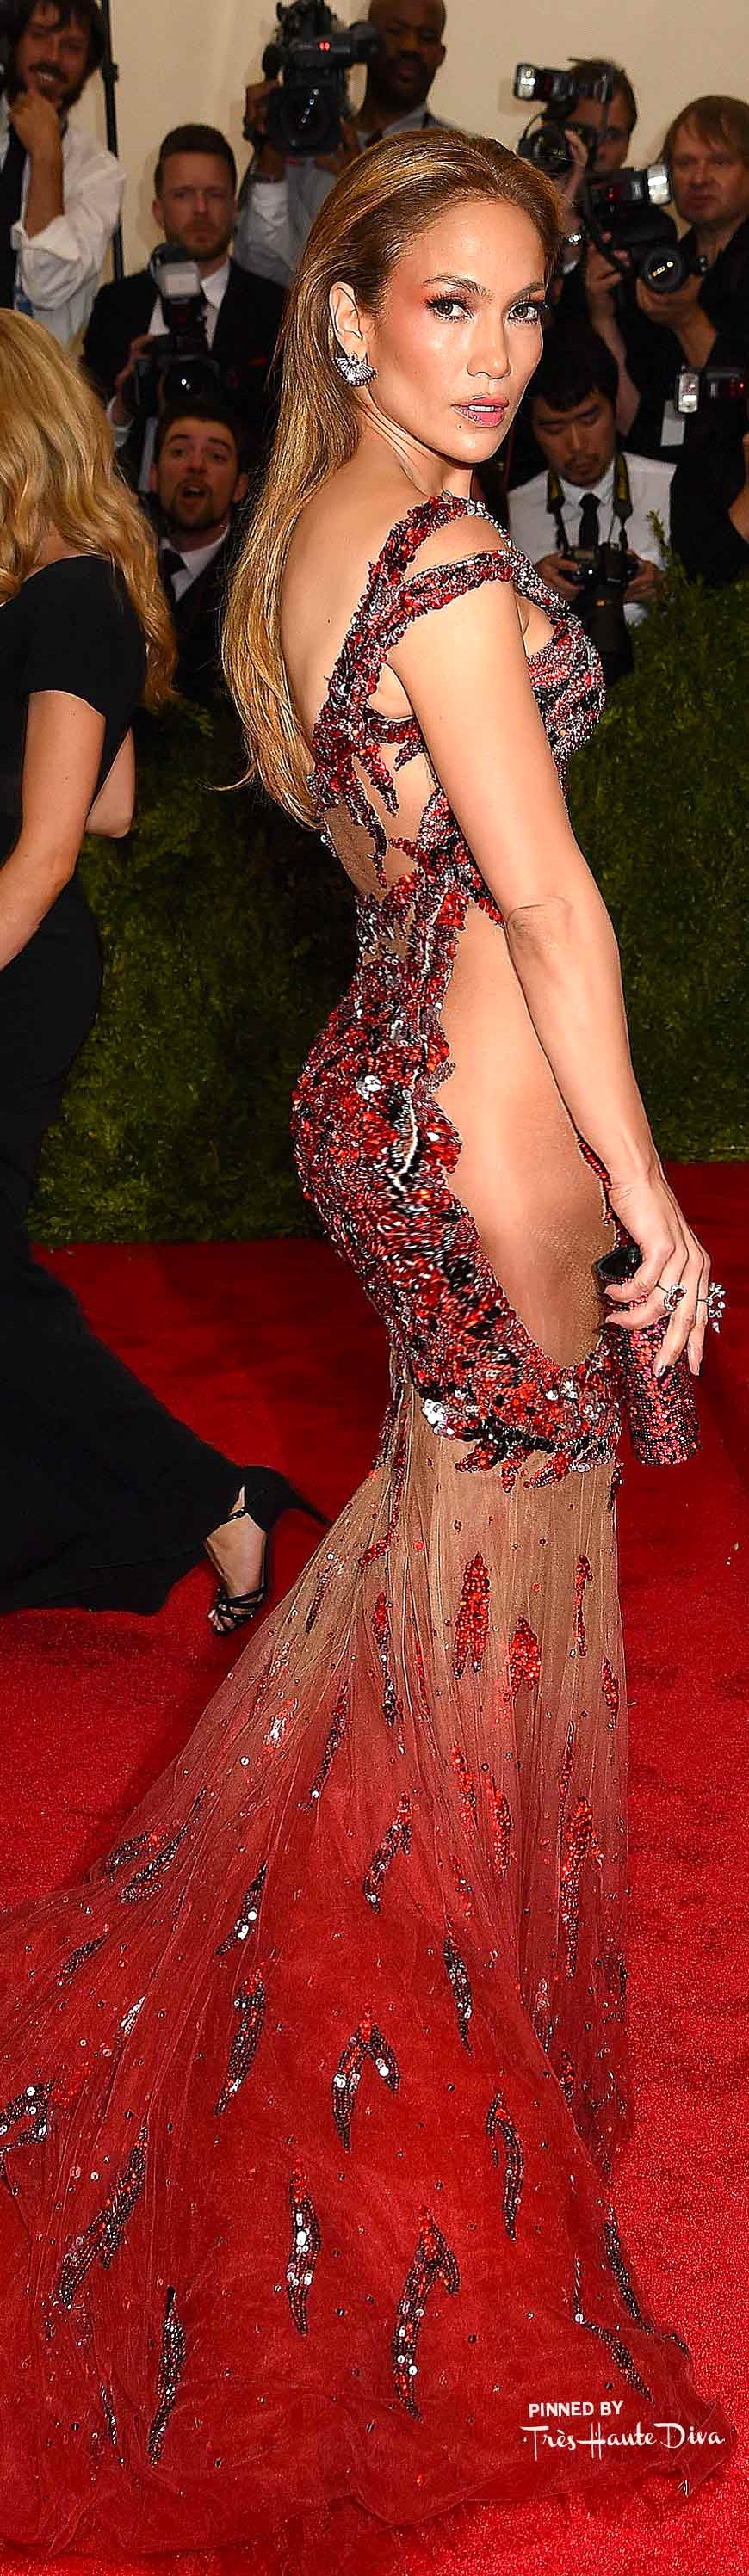 Jennifer Lopez in Custom Versace         Getty Images/ Dimitrios Kambouris